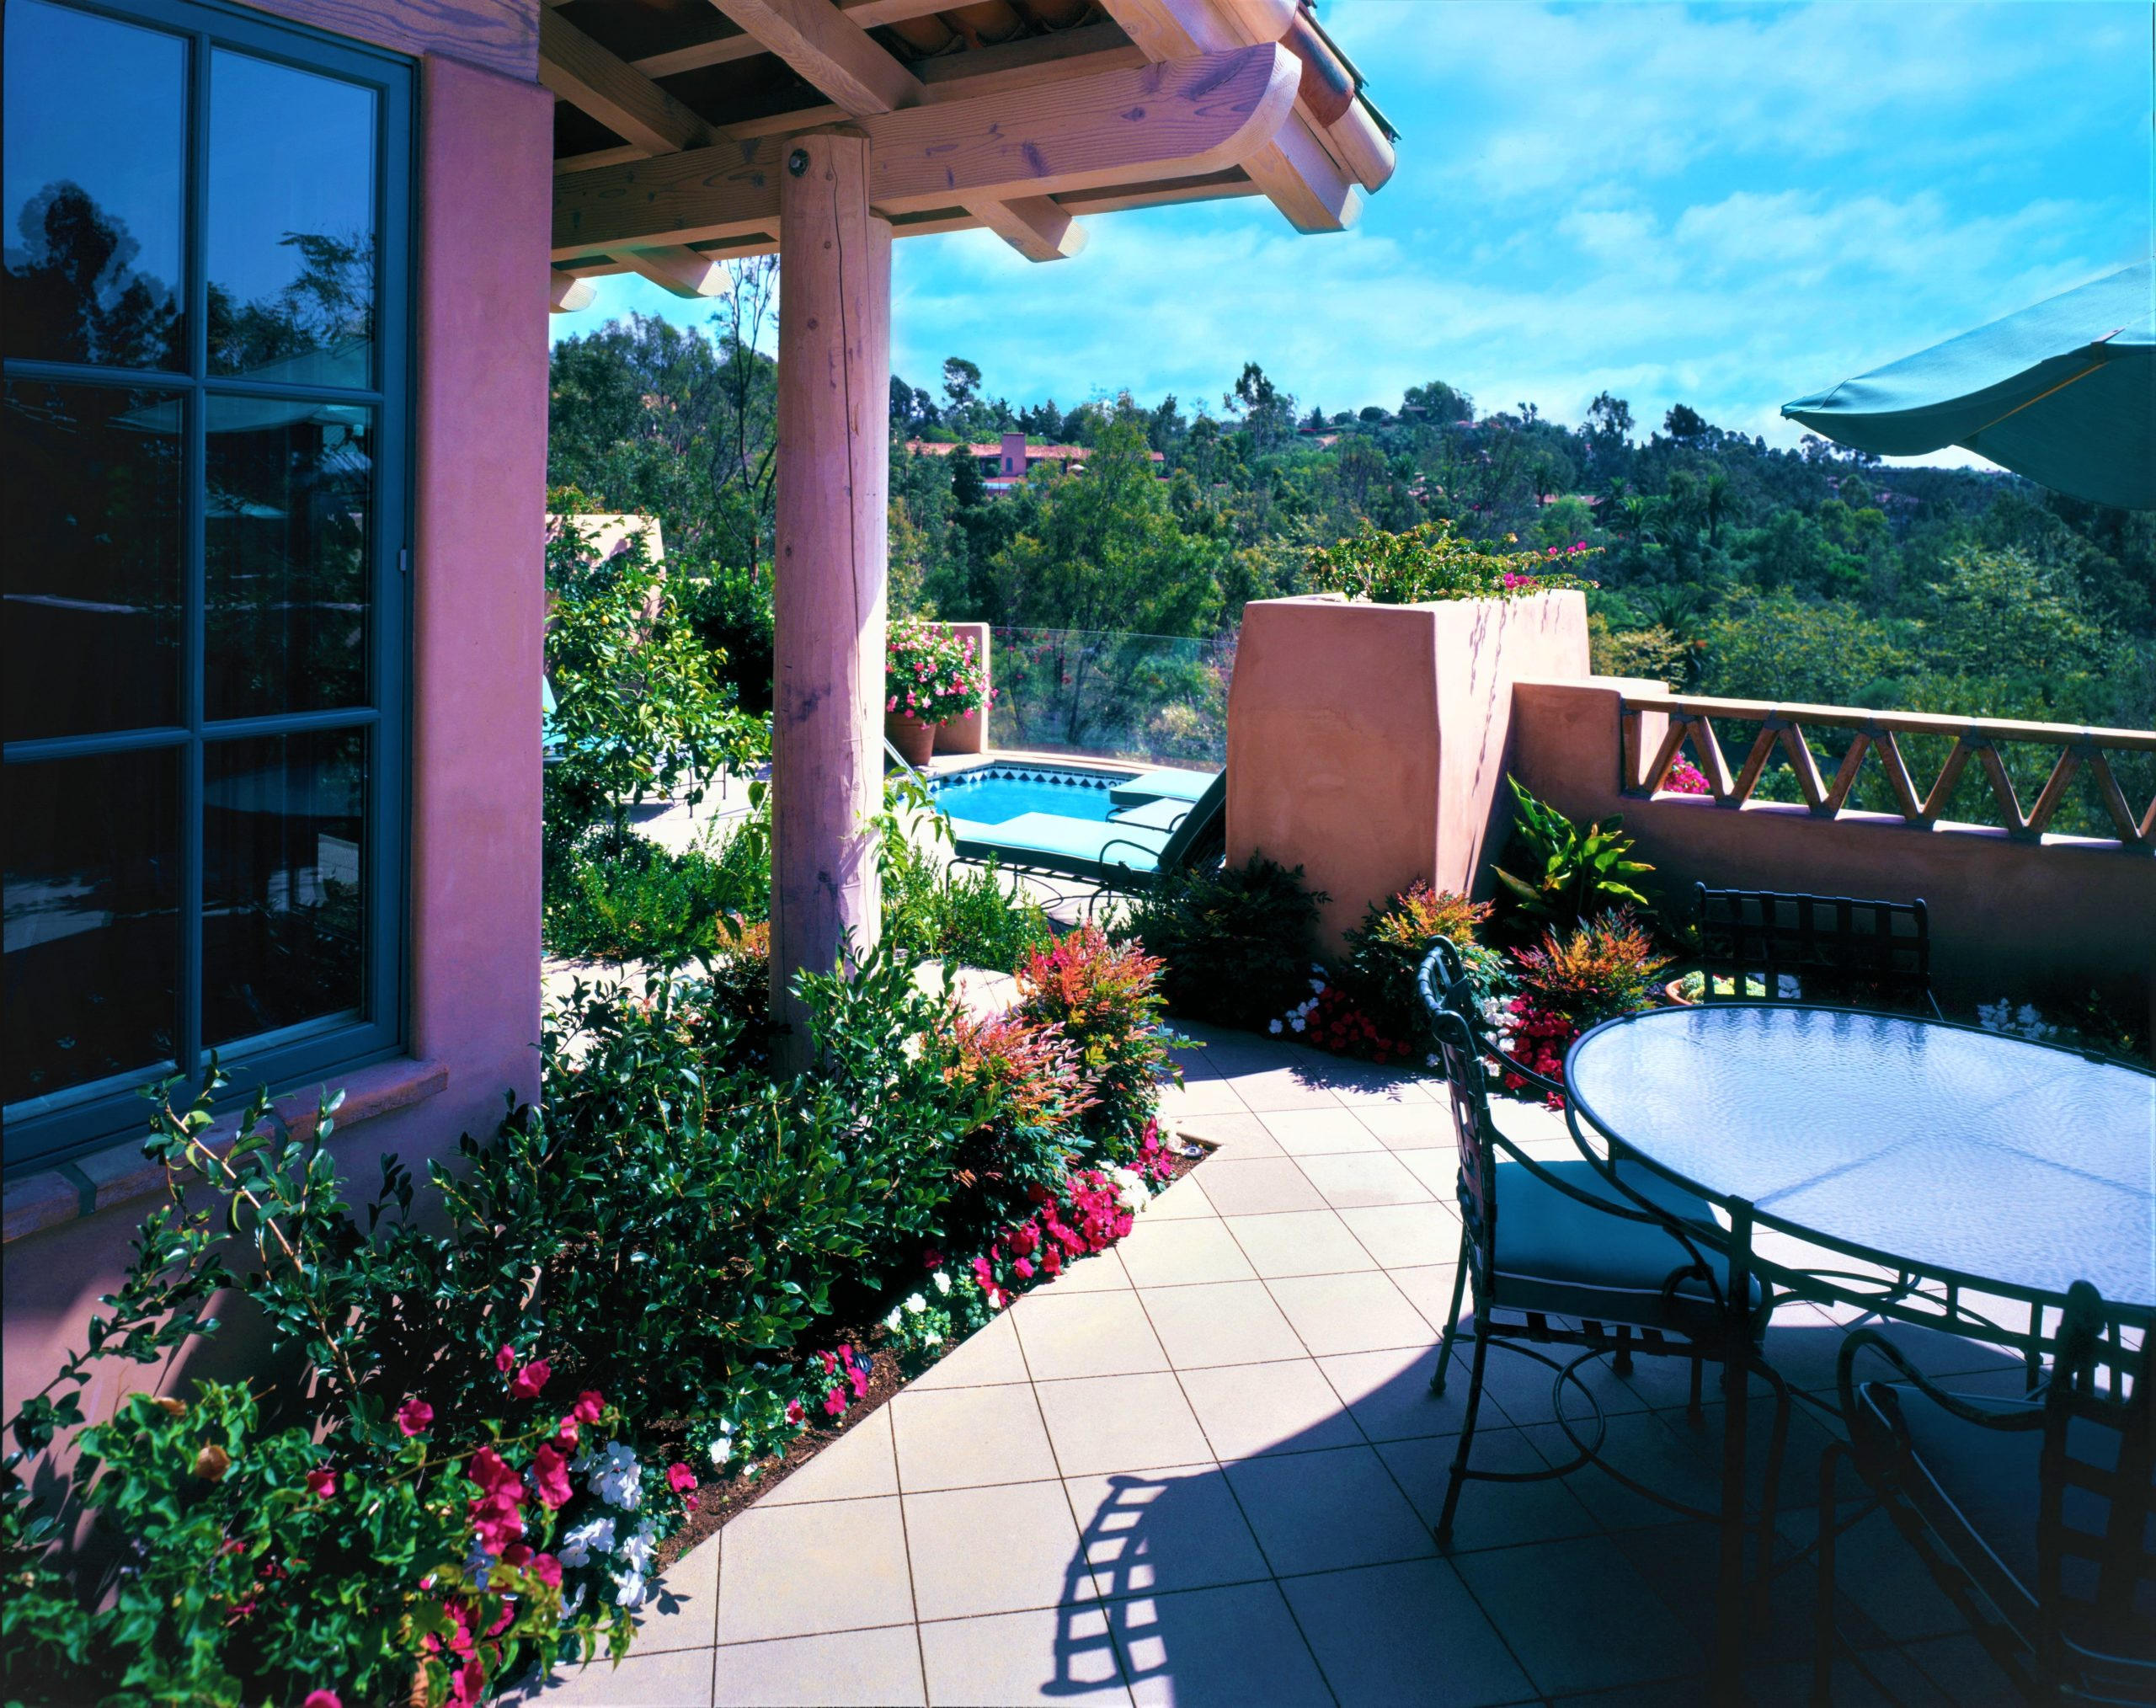 Accessible San Diego Olive Grove hotel suite patio overlooking spacious resort grounds with trees, flowers, pool